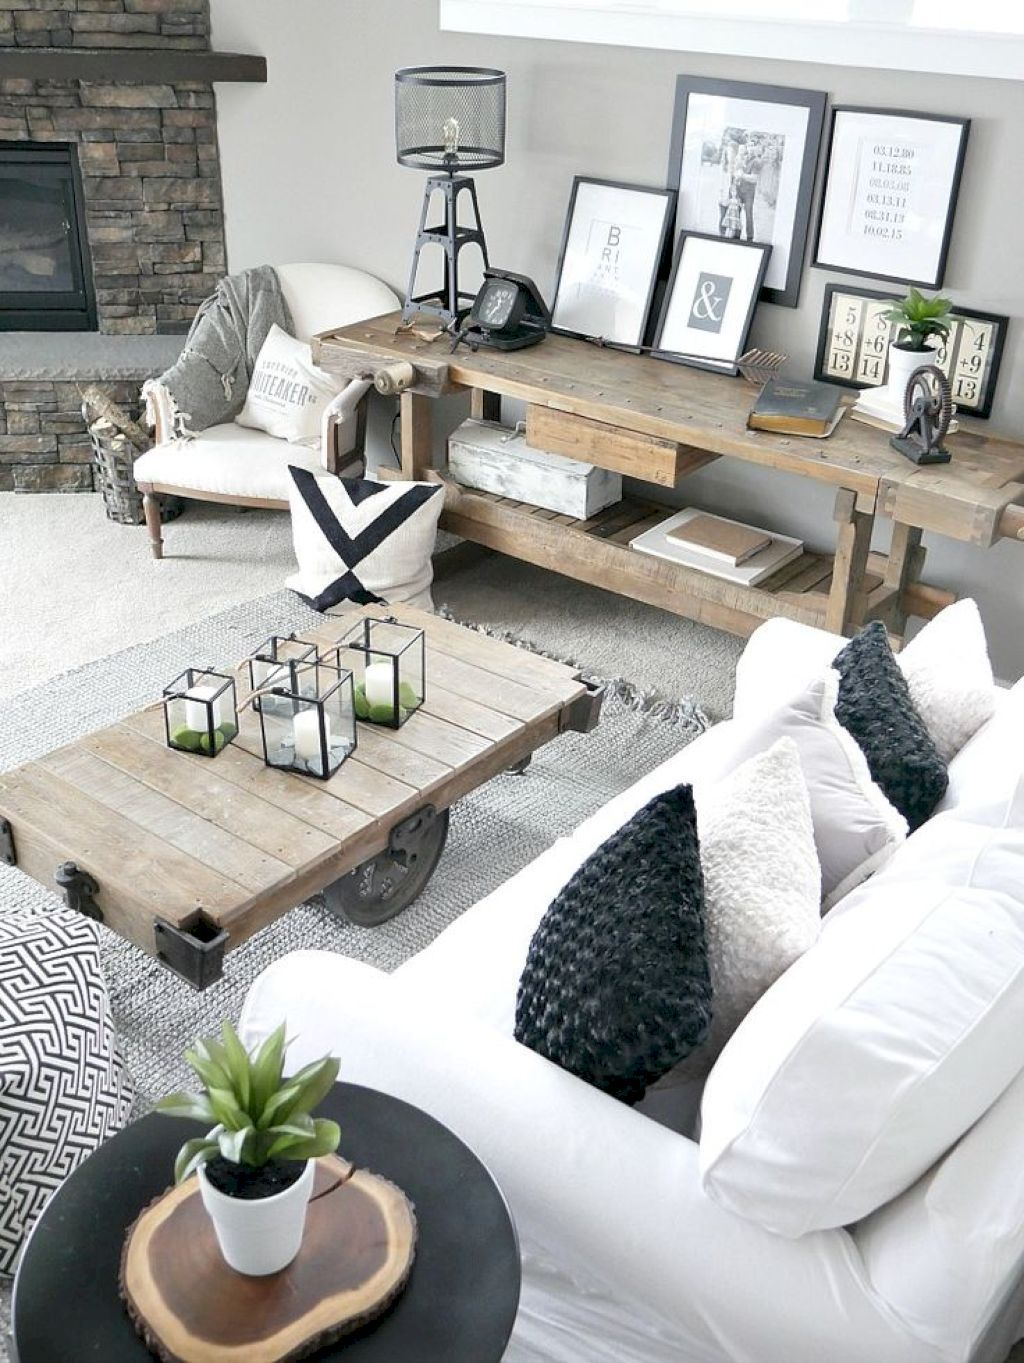 23 Simple and Beauty Rustic Living Room Decor Ideas | Rustic living ...